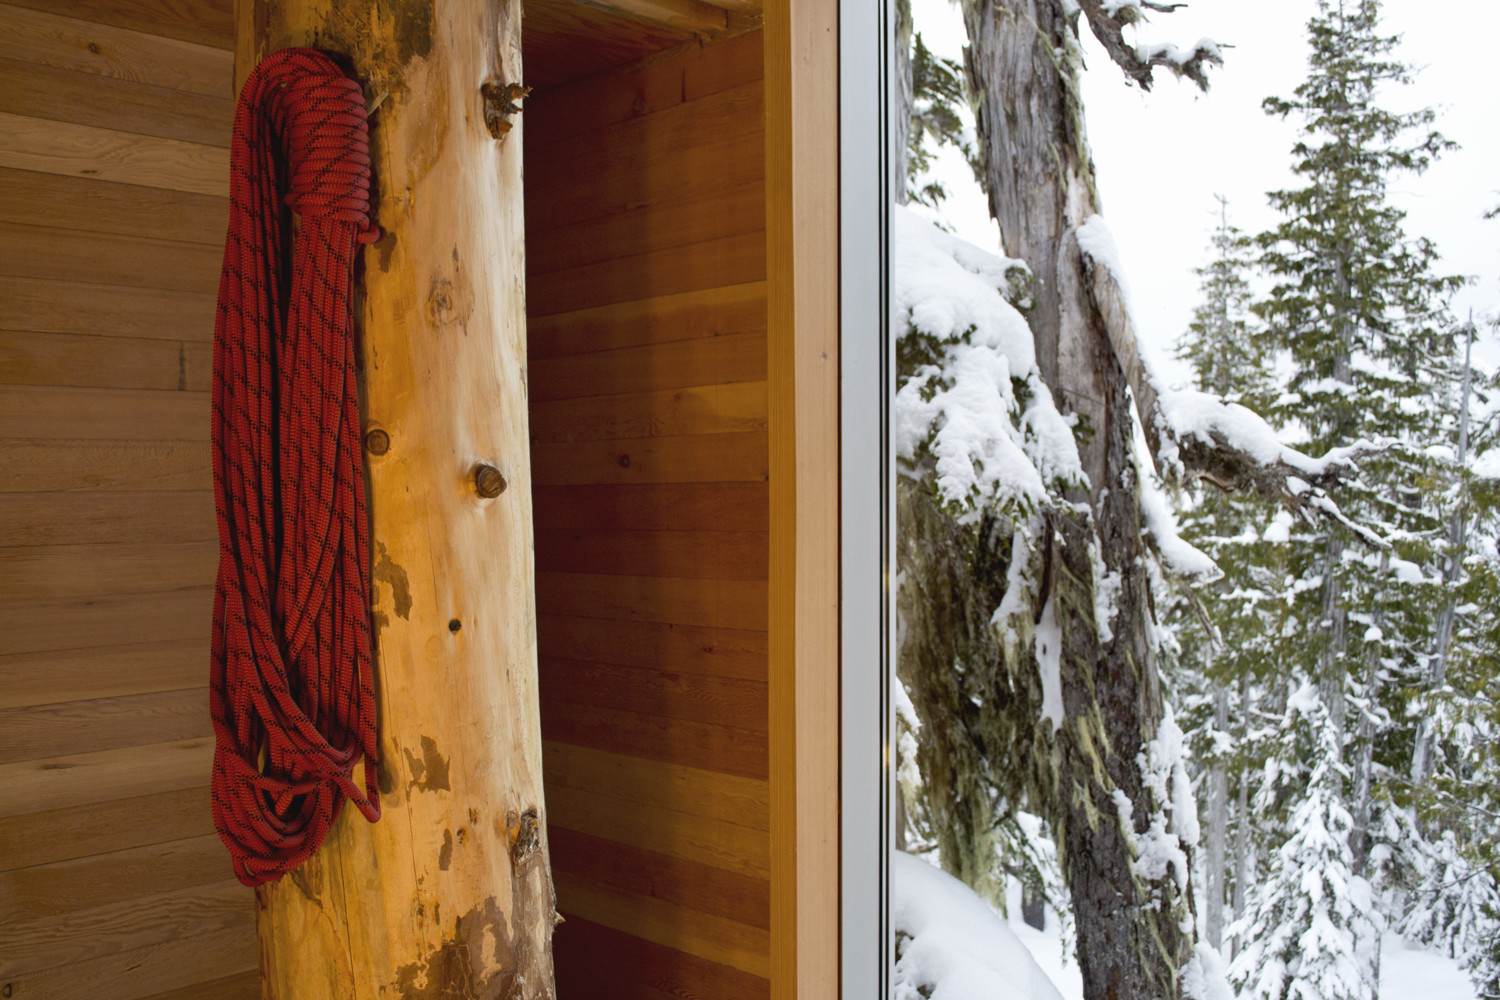 Closer look at the douglas fir columns inside the cabin